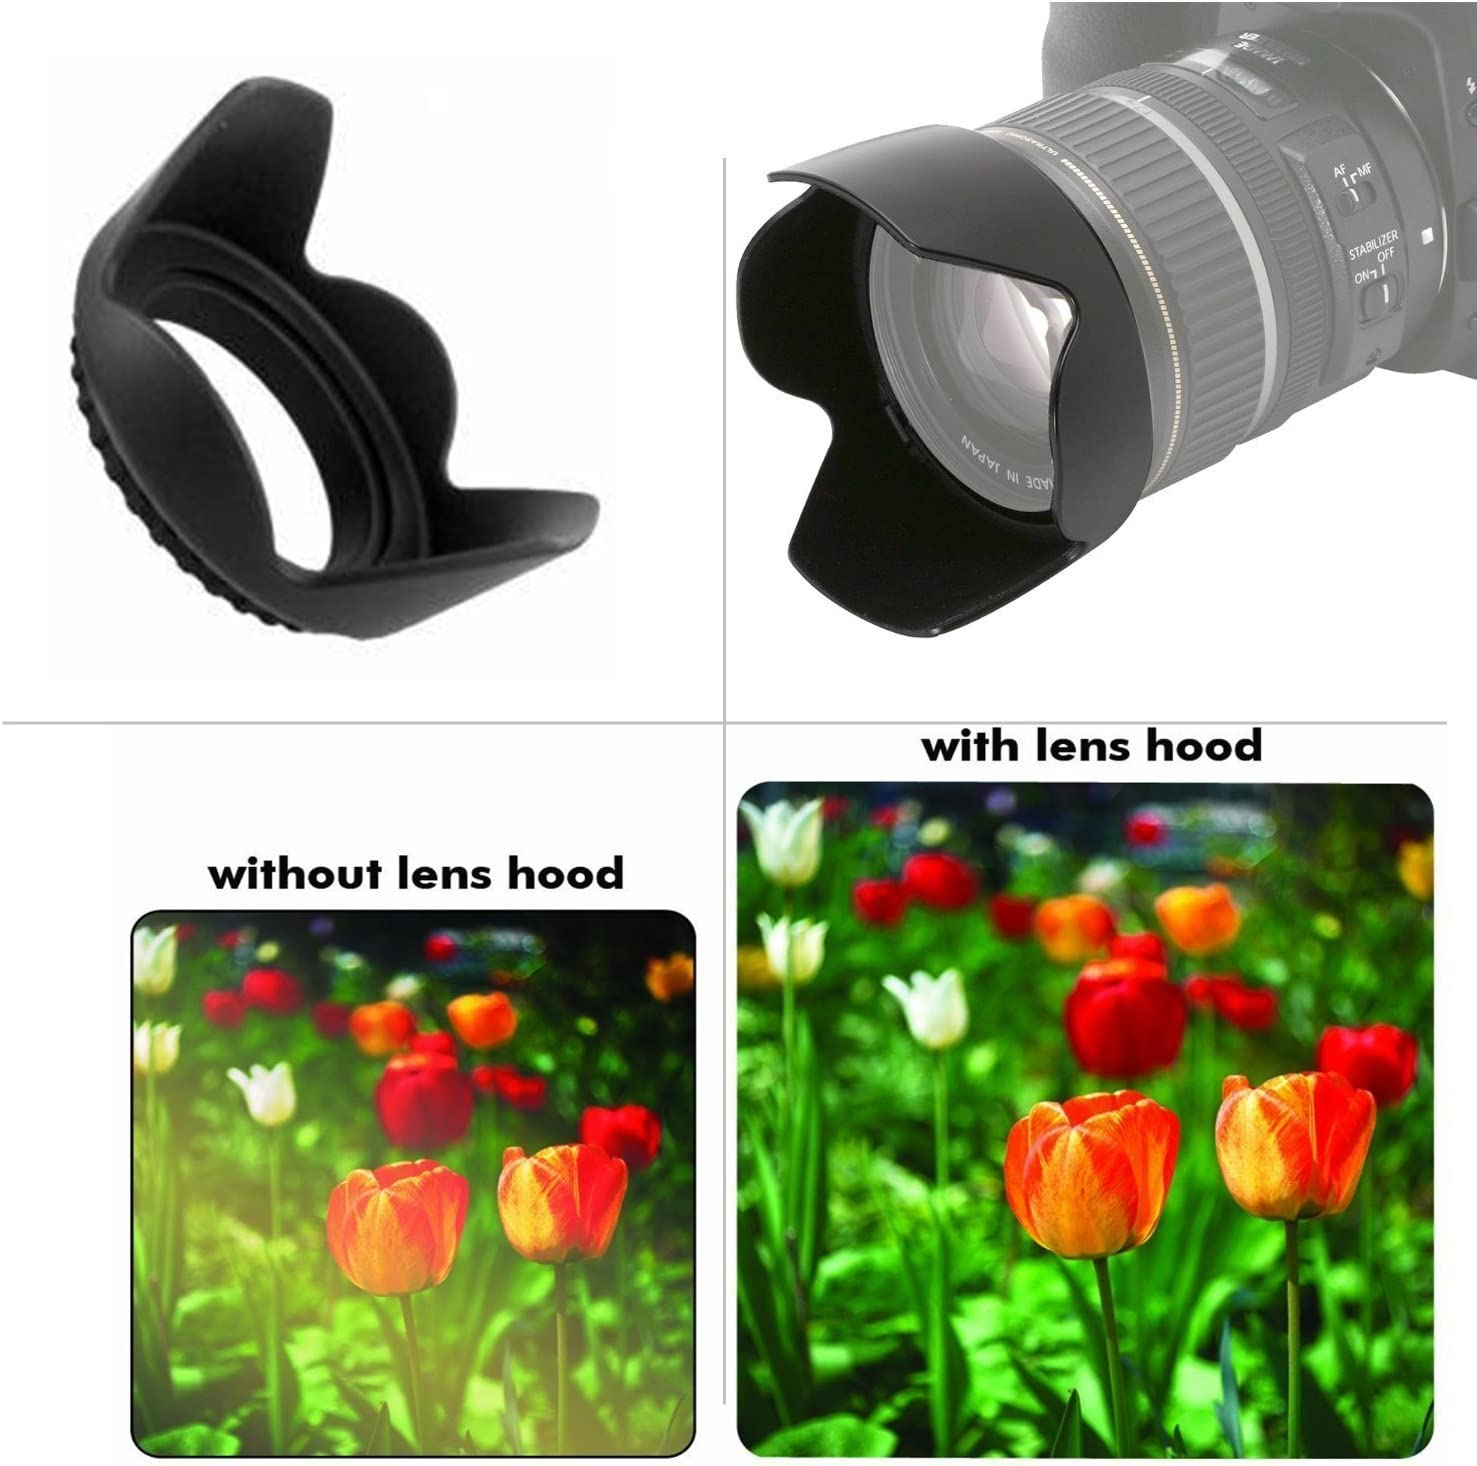 77mm Flower Design Canon EOS M50 Pro Digital Lens Hood + Nw Direct Microfiber Cleaning Cloth.